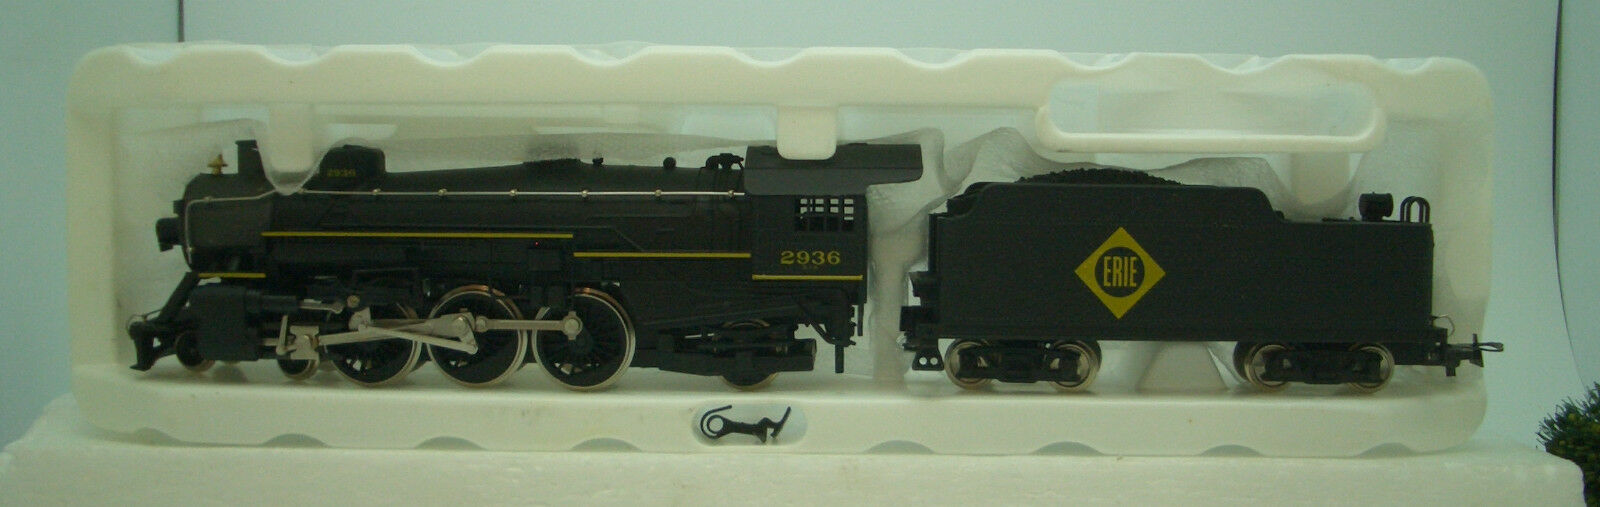 Ho 4-6-2 Pacific Premier Erie   M9911 Road   2936